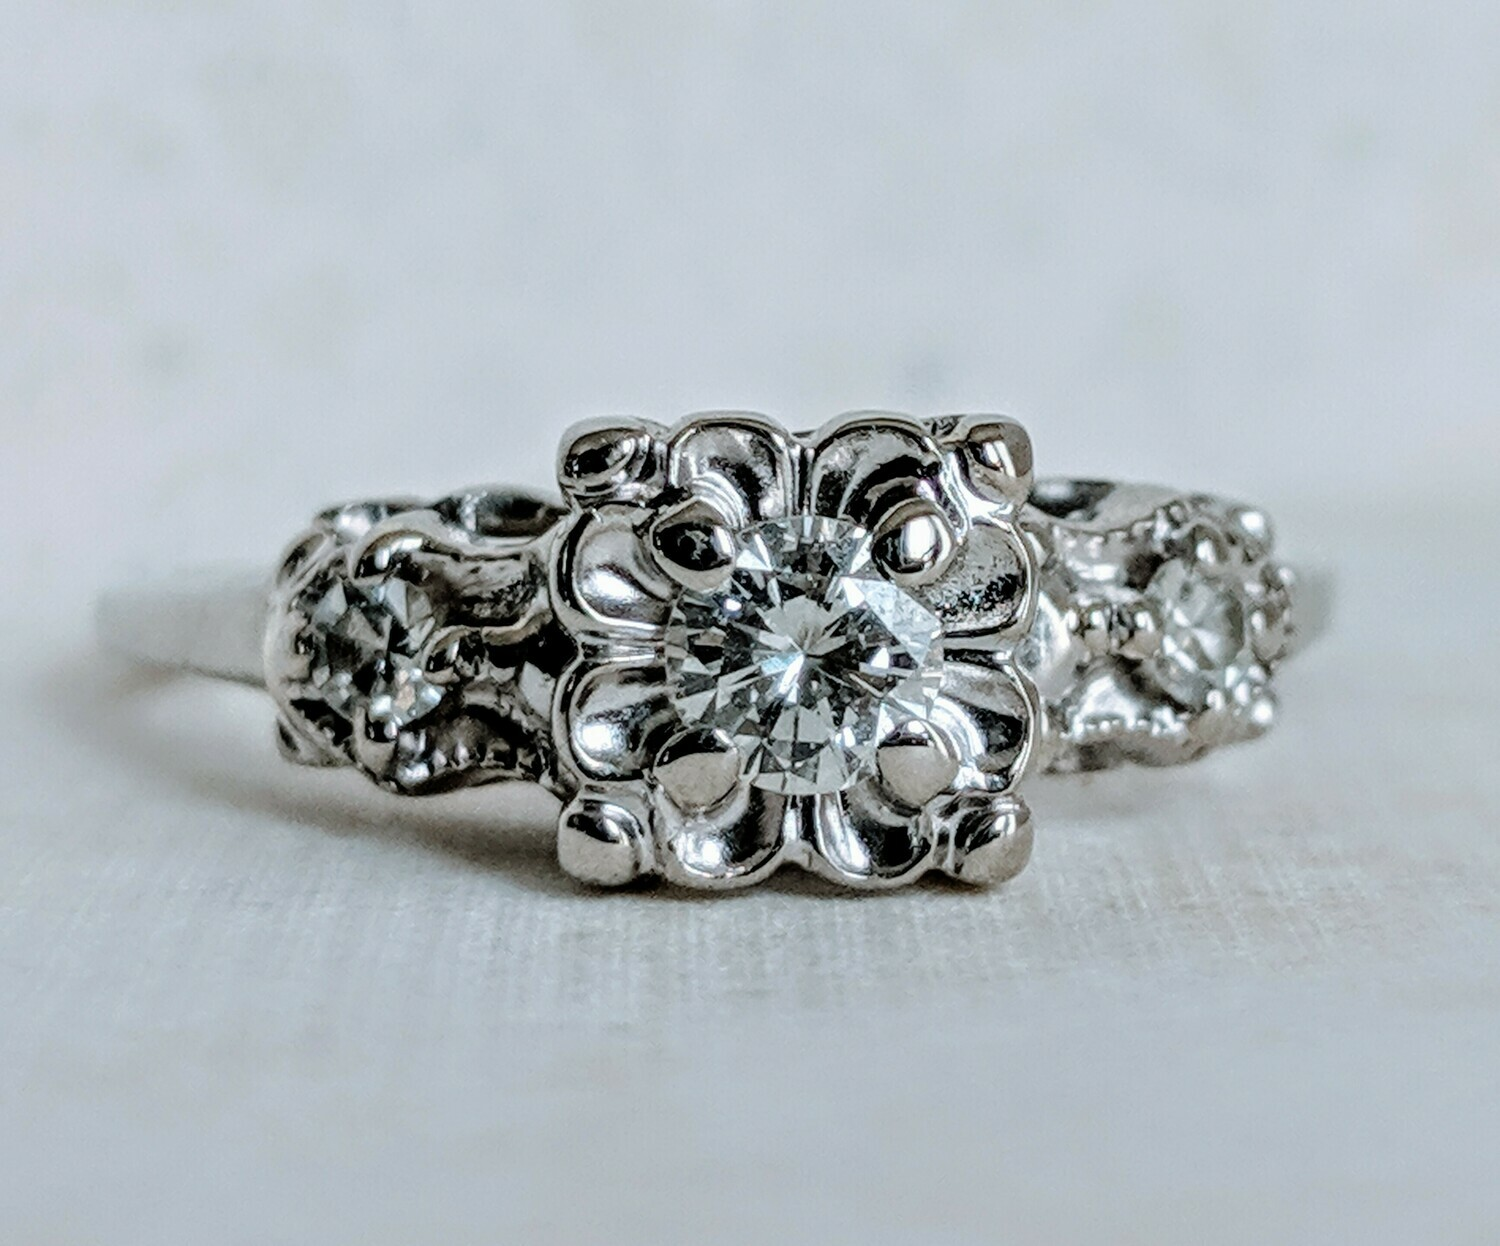 Authentic Vintage 1950s Diamond Ring in 14k White Gold